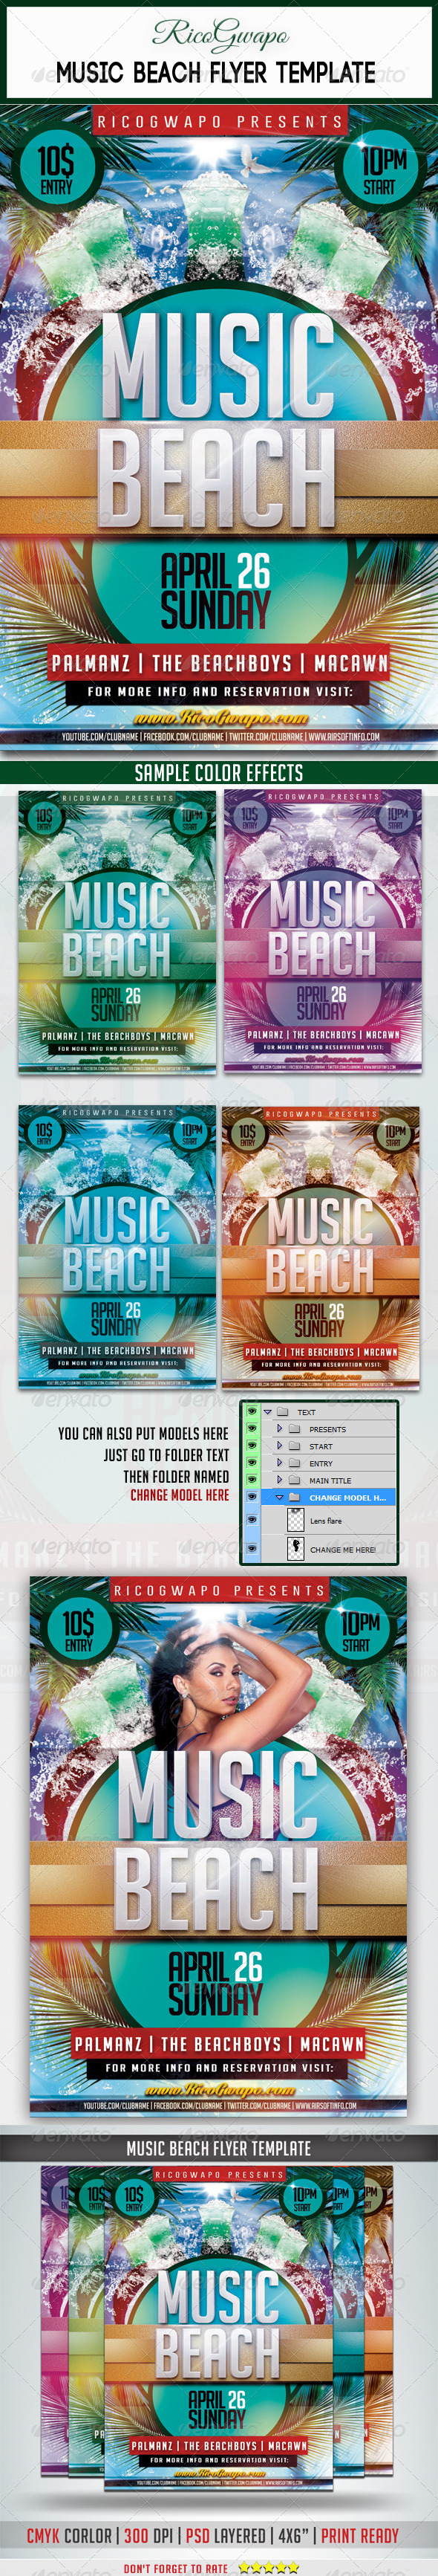 GraphicRiver Music Beach Flyer Template 7055539